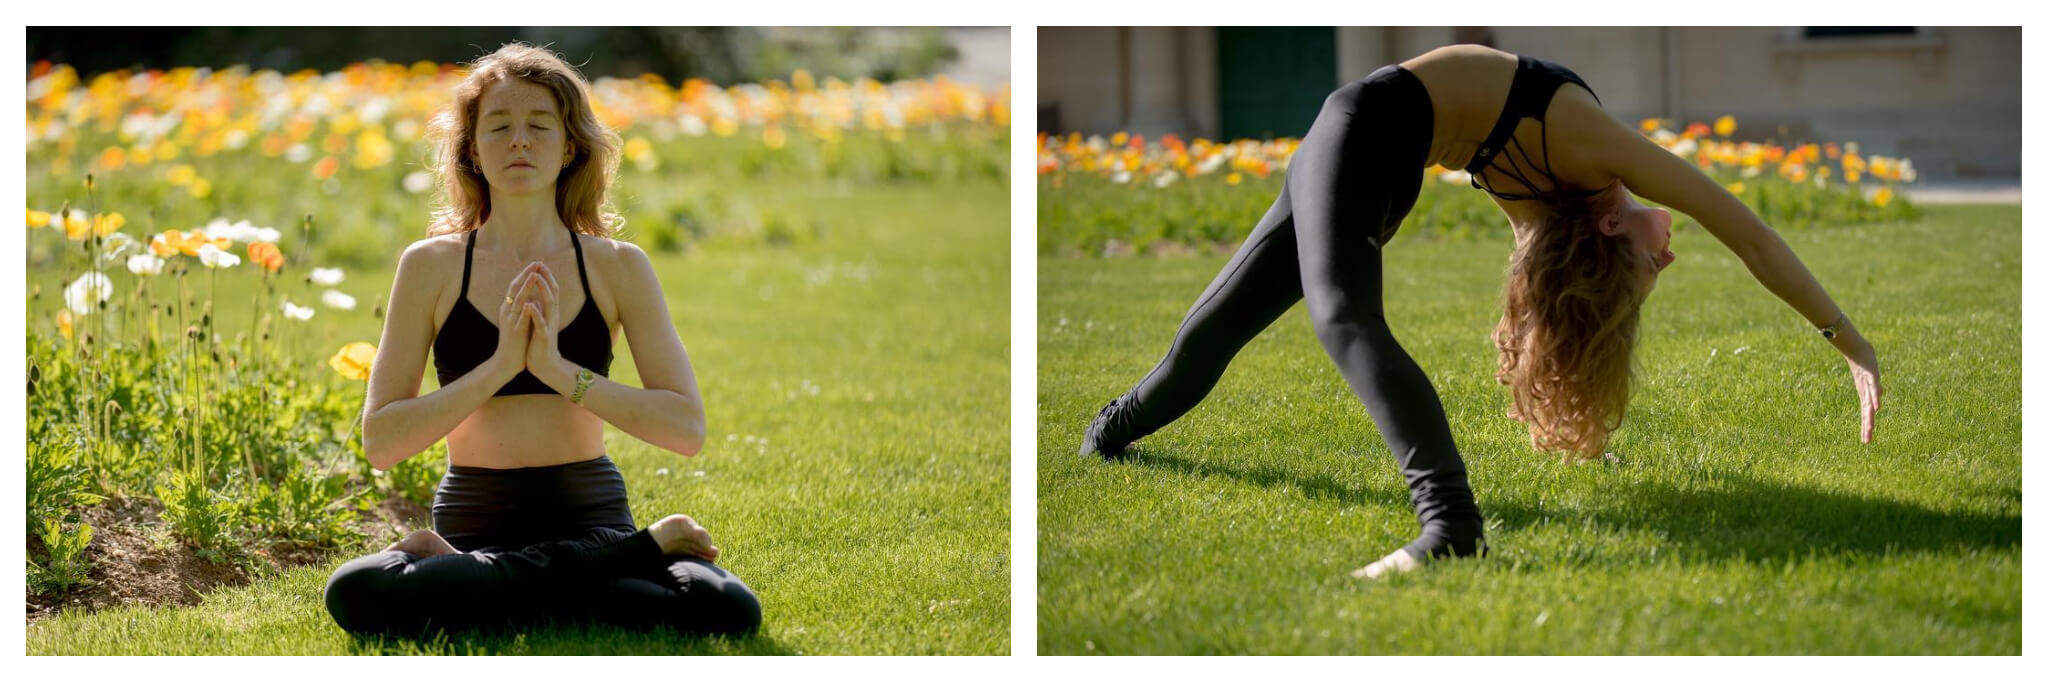 Left: a woman sits in lotus pose with hands in prayer, in front of flowers in full bloom. Right: A woman does a backbend in font of a bed of flowers.